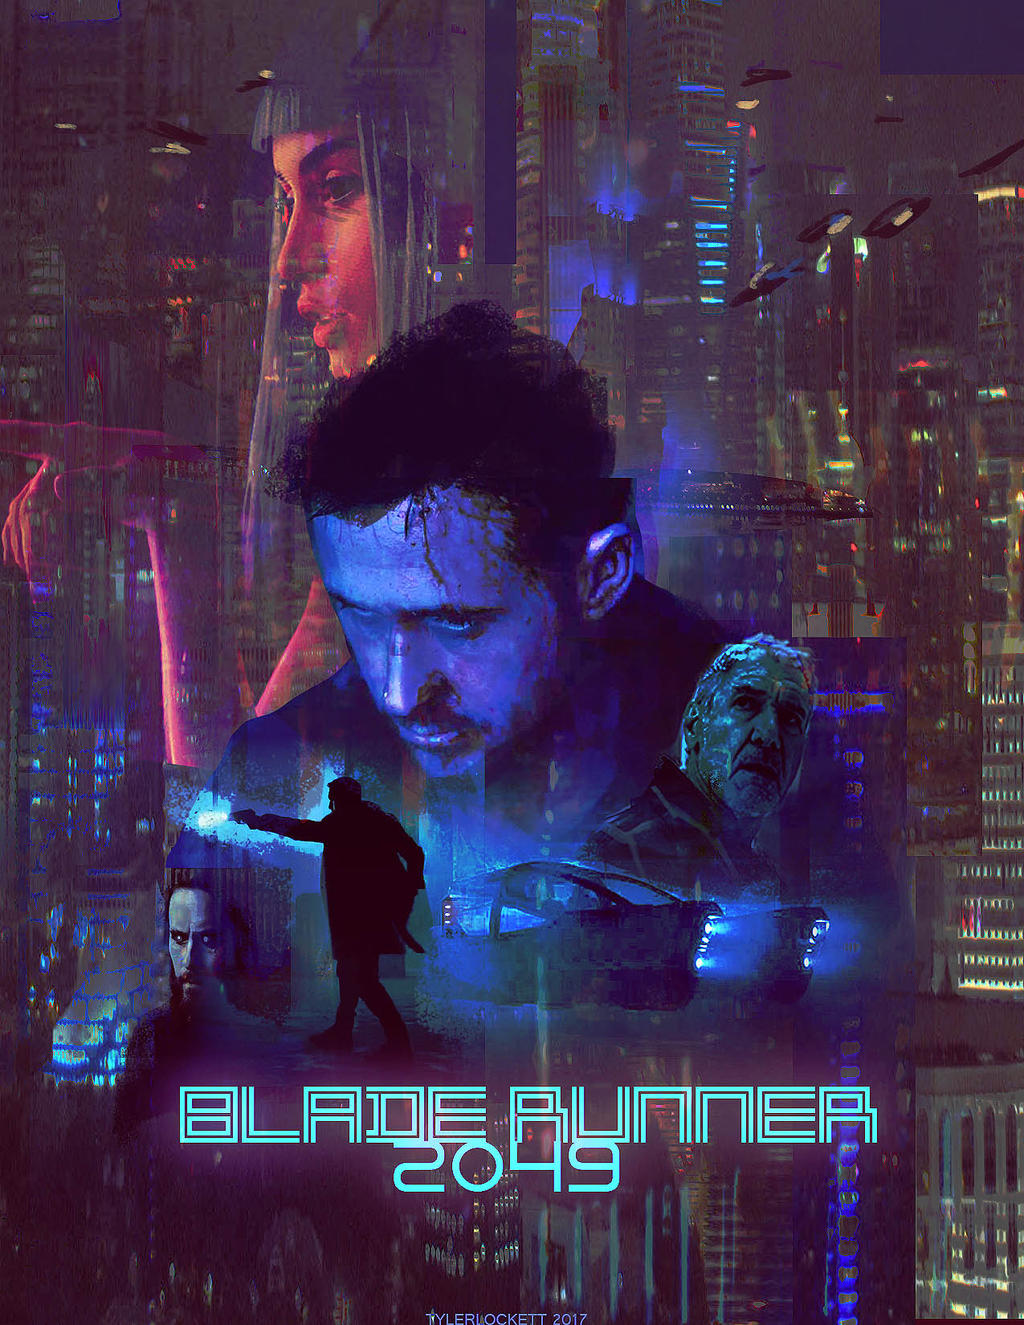 Bladerunner by tylerlockett